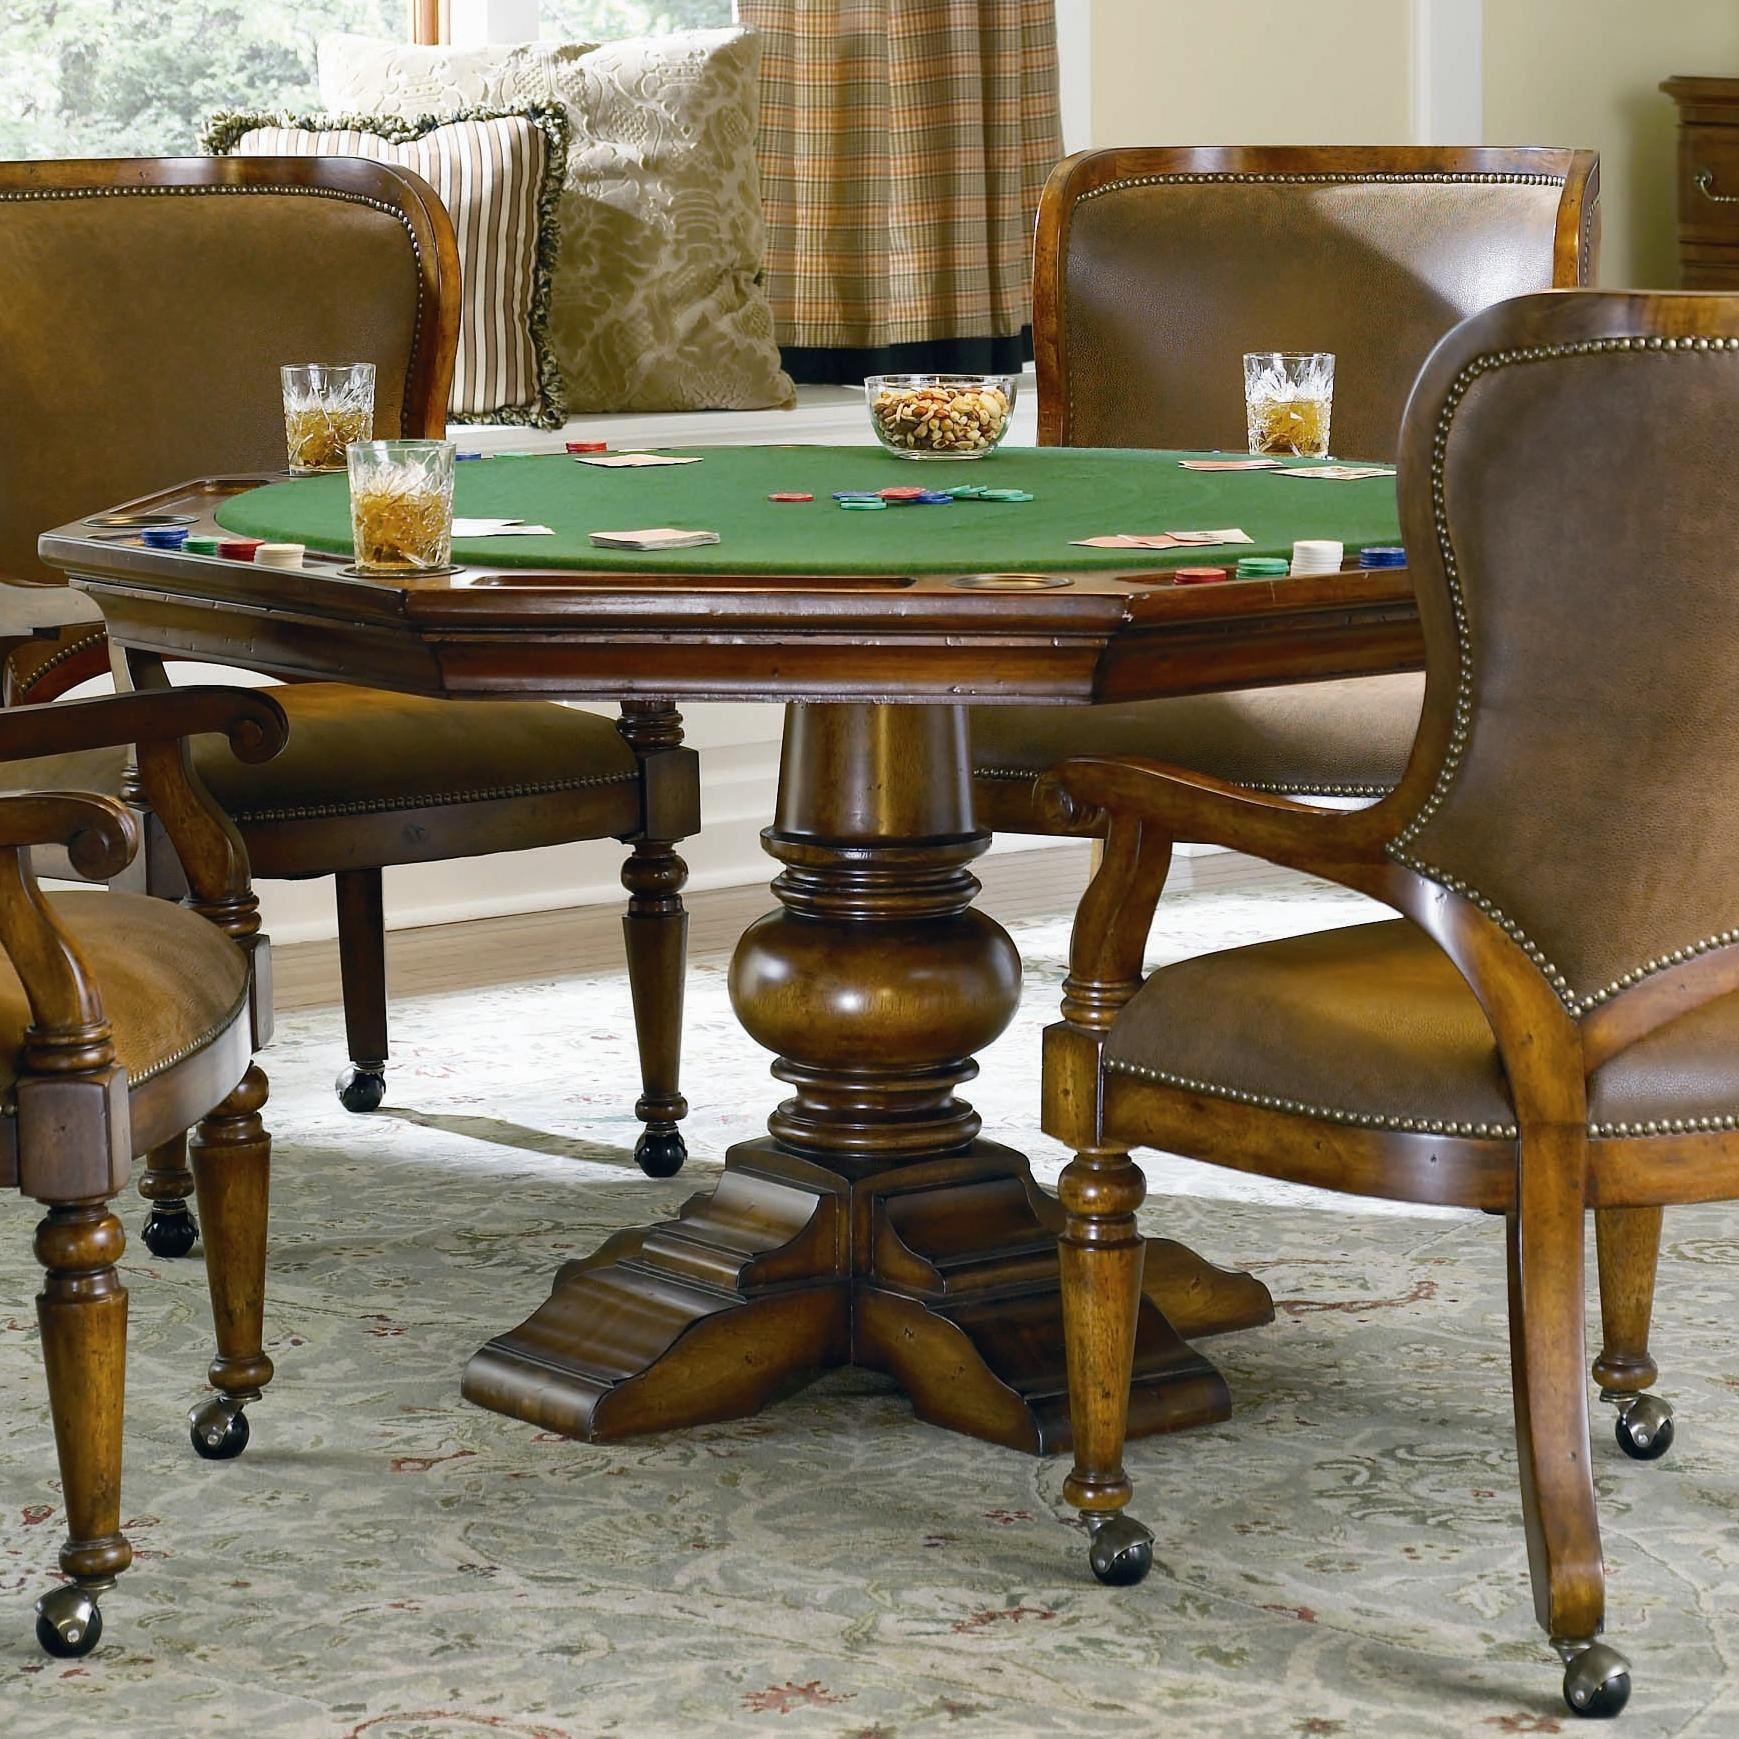 Hamilton Home Waverly Place Reversible Top Poker Table